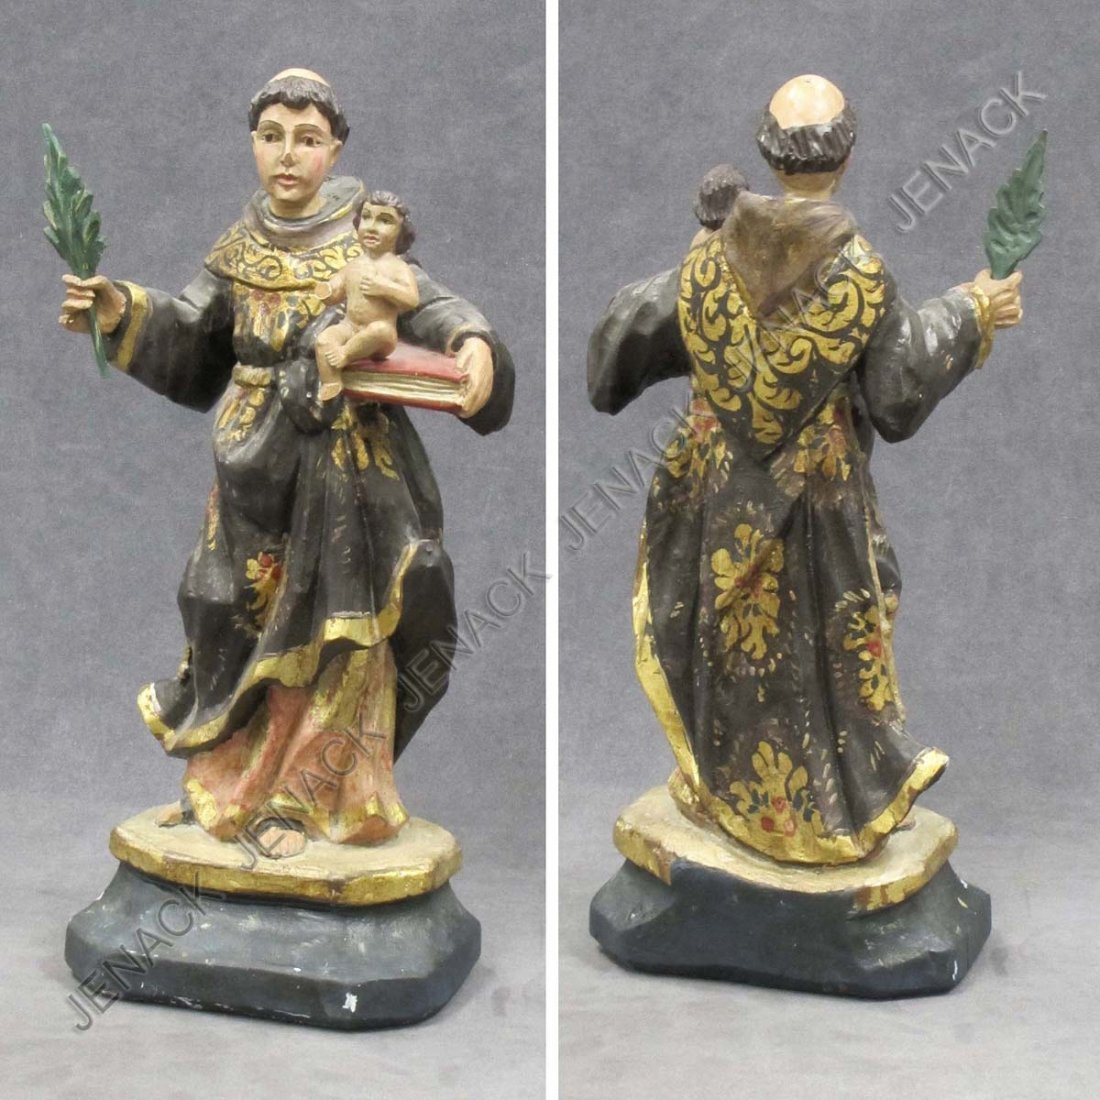 20: SPANISH COLONIAL CARVED AND PAINTED SANTOS FIGURE